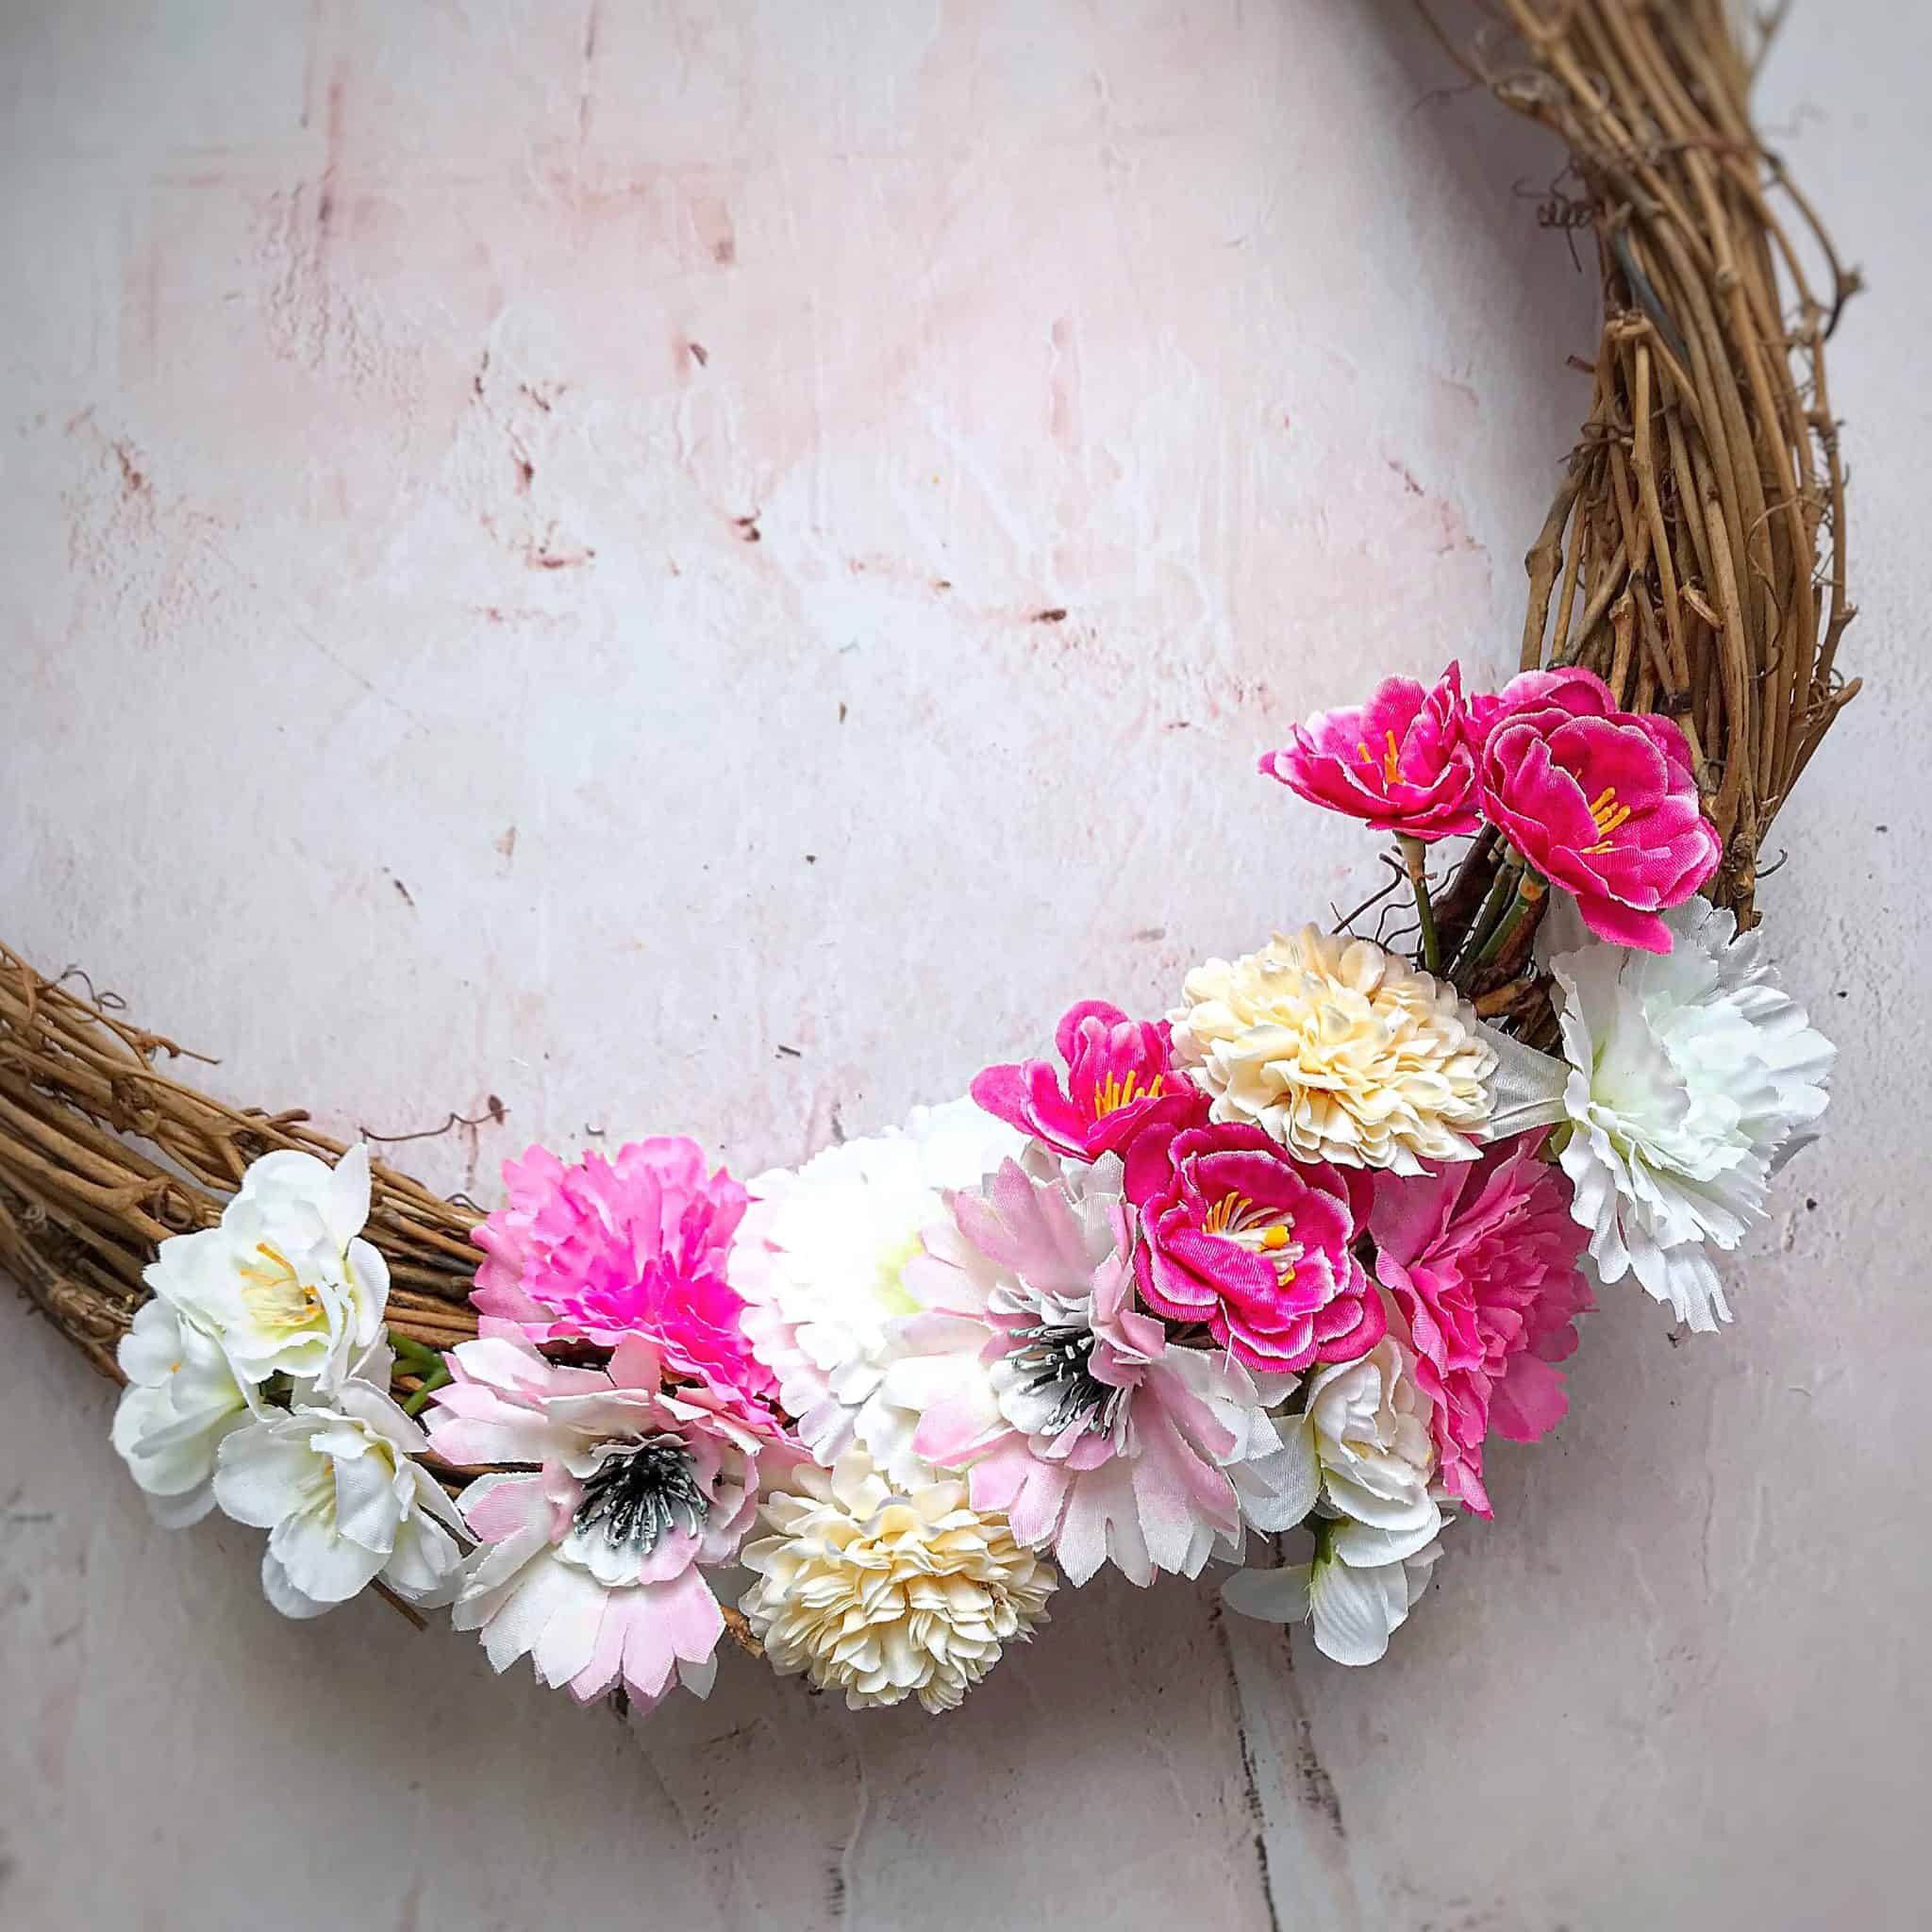 Make an easy spring wreath using fake flowers